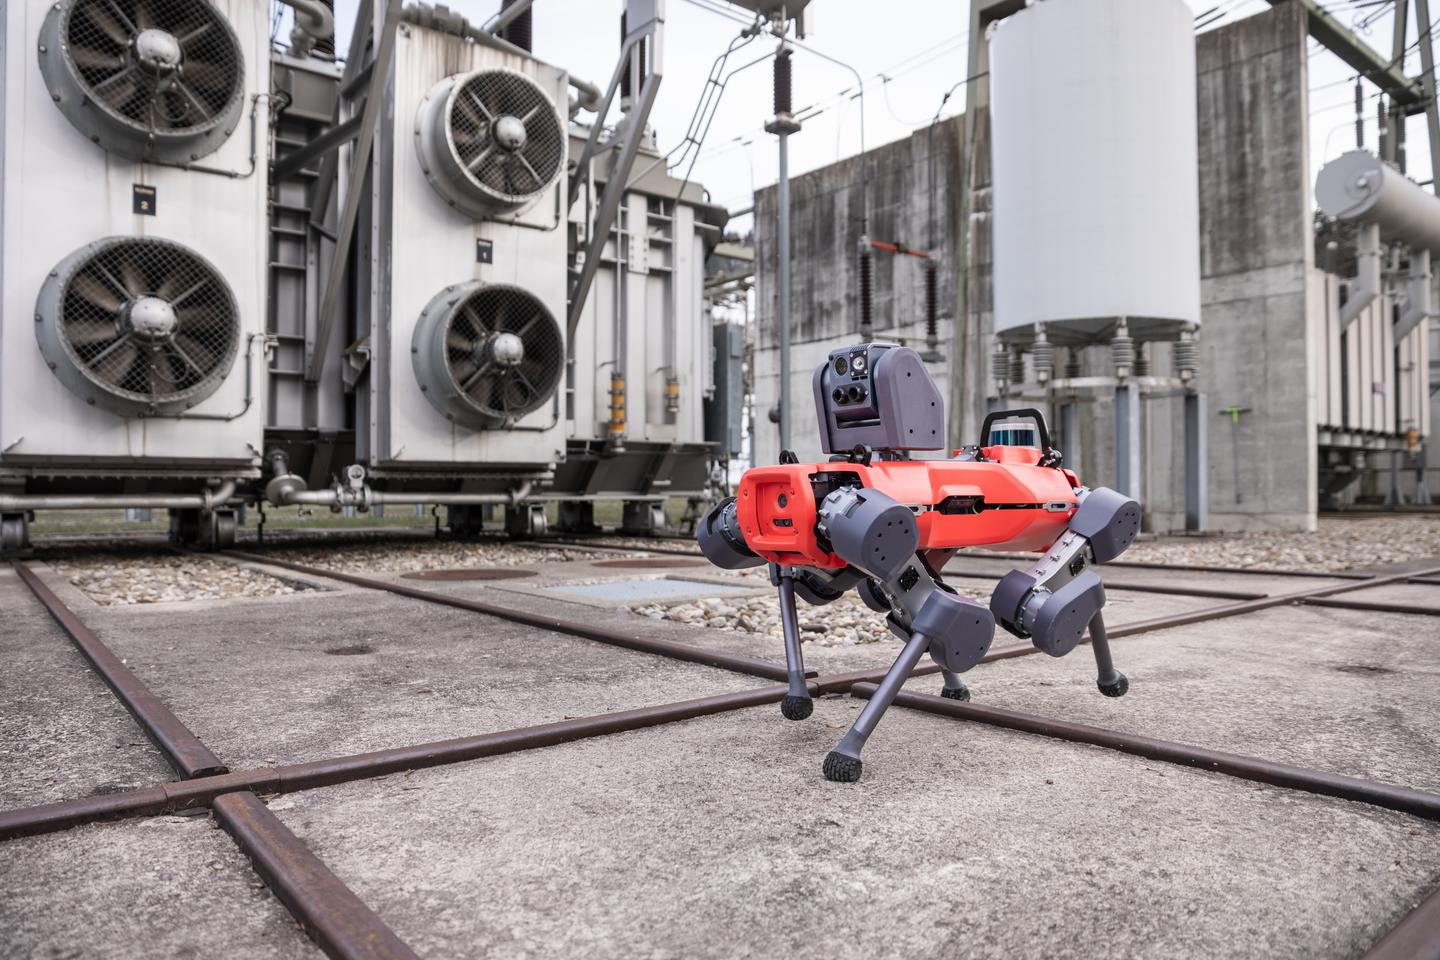 The ANYmal D walking robot can make its way around an industrial facility to make sure that equipment is running as it should